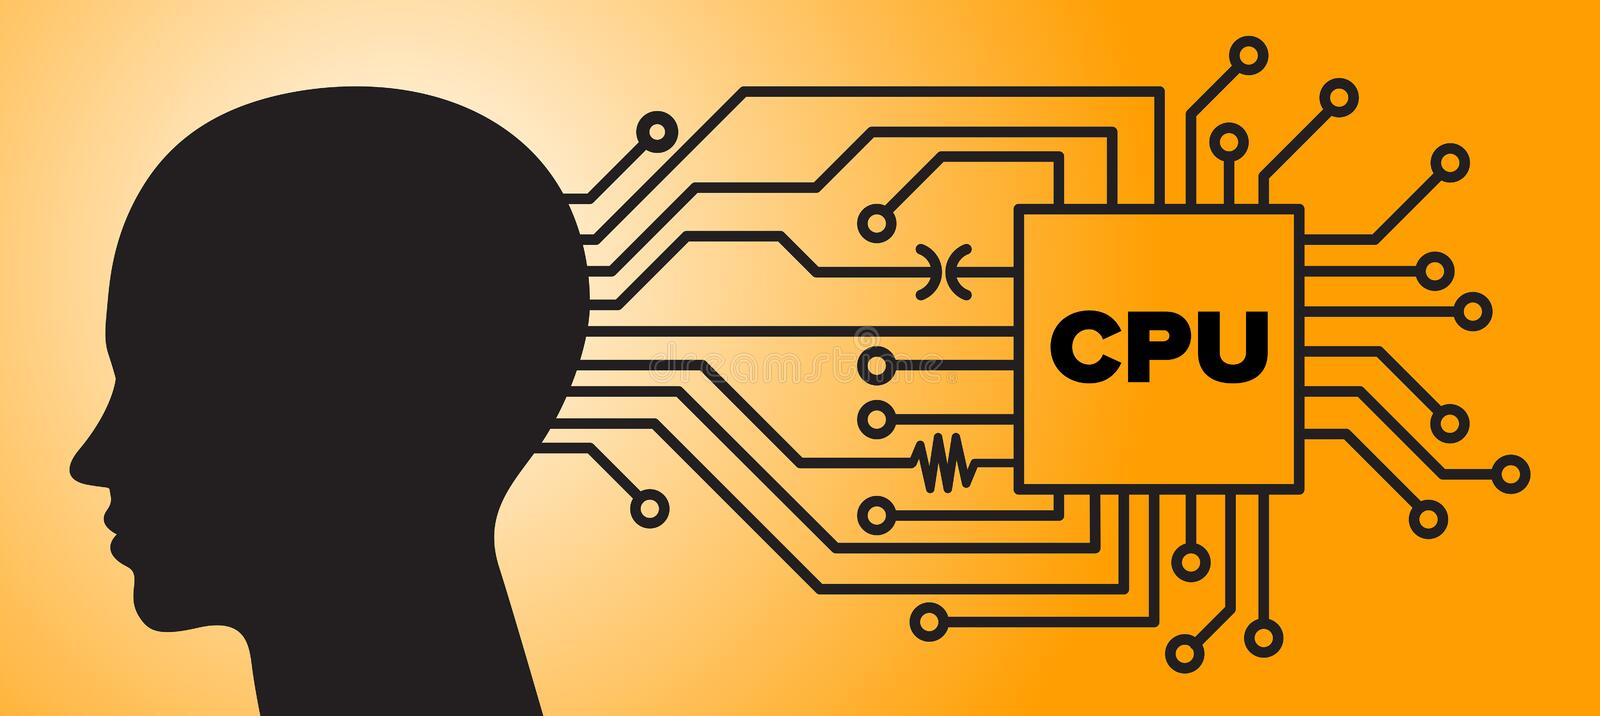 Vector brain interfacing with computer CPU. Vector illustration of human interfacing with computer CPU Central Processing Unit as an upgrade implant for the royalty free illustration